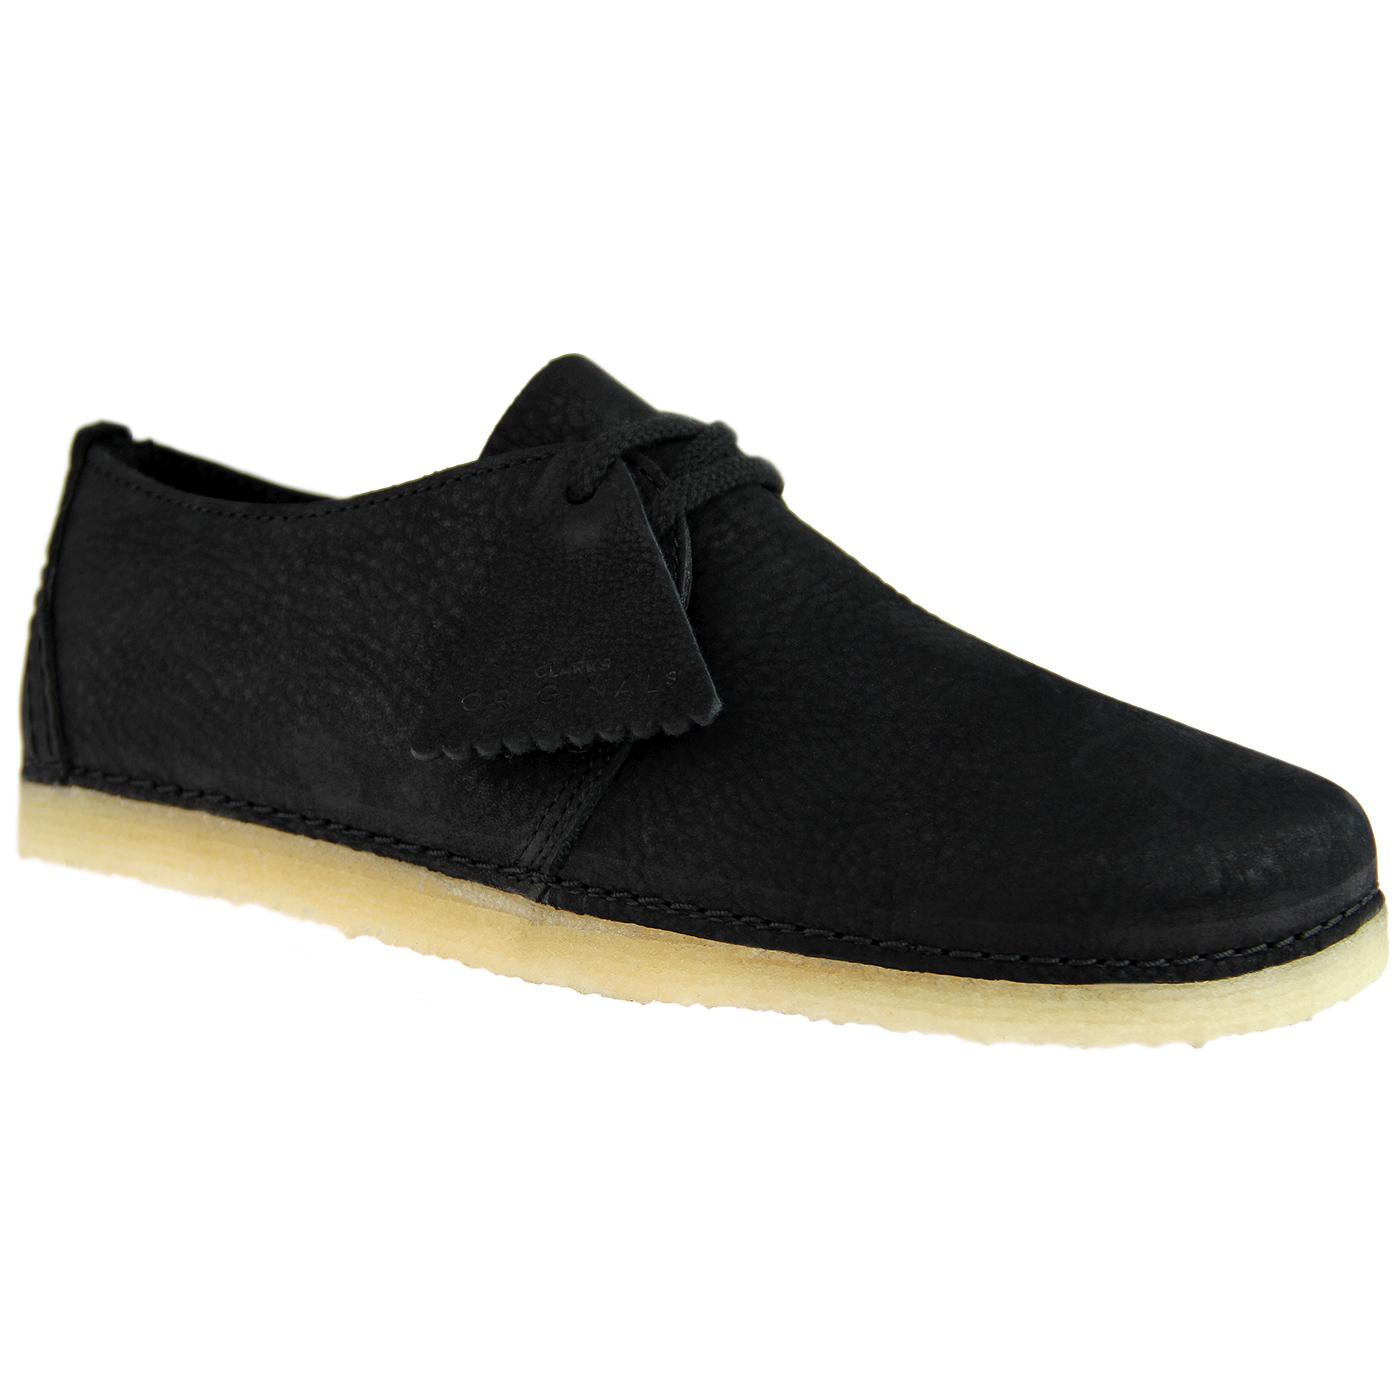 Ashton CLARKS ORIGINALS Women's Nubuck Shoes BLACK